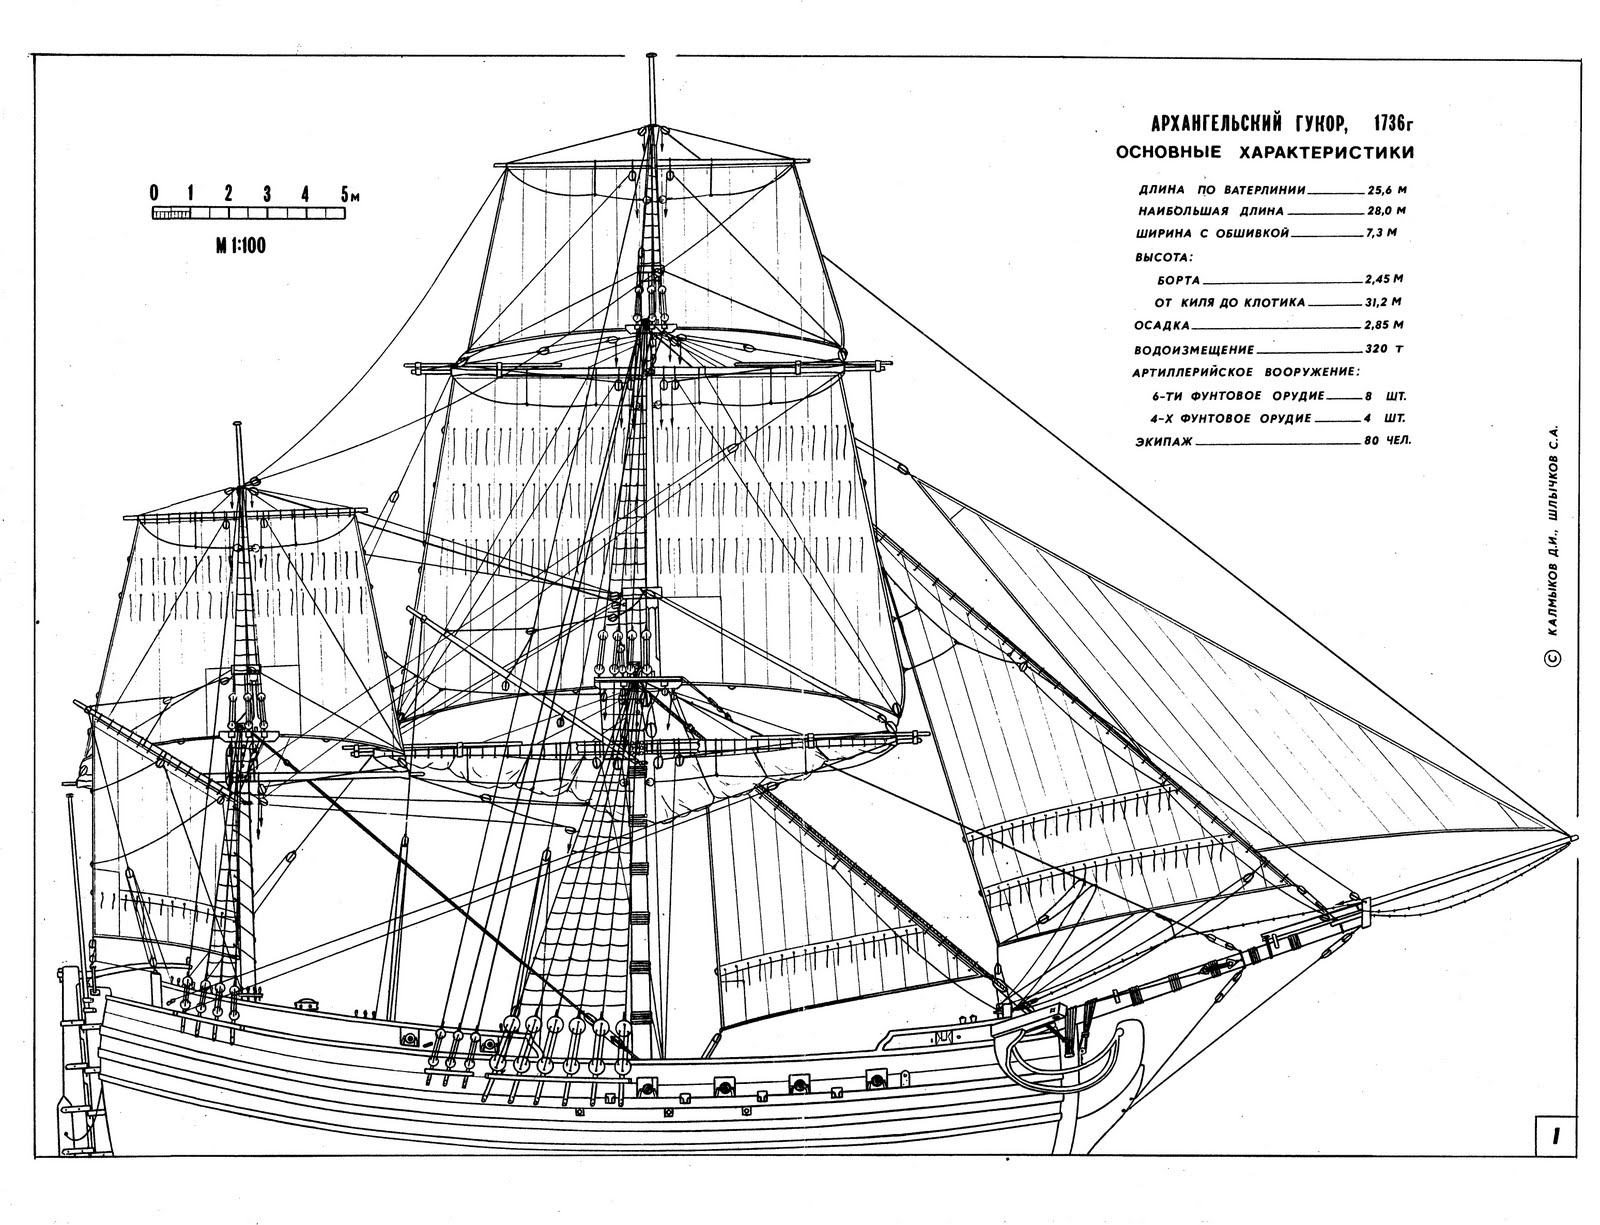 Woodwork free model boat plans wooden pdf plans Model plans for house